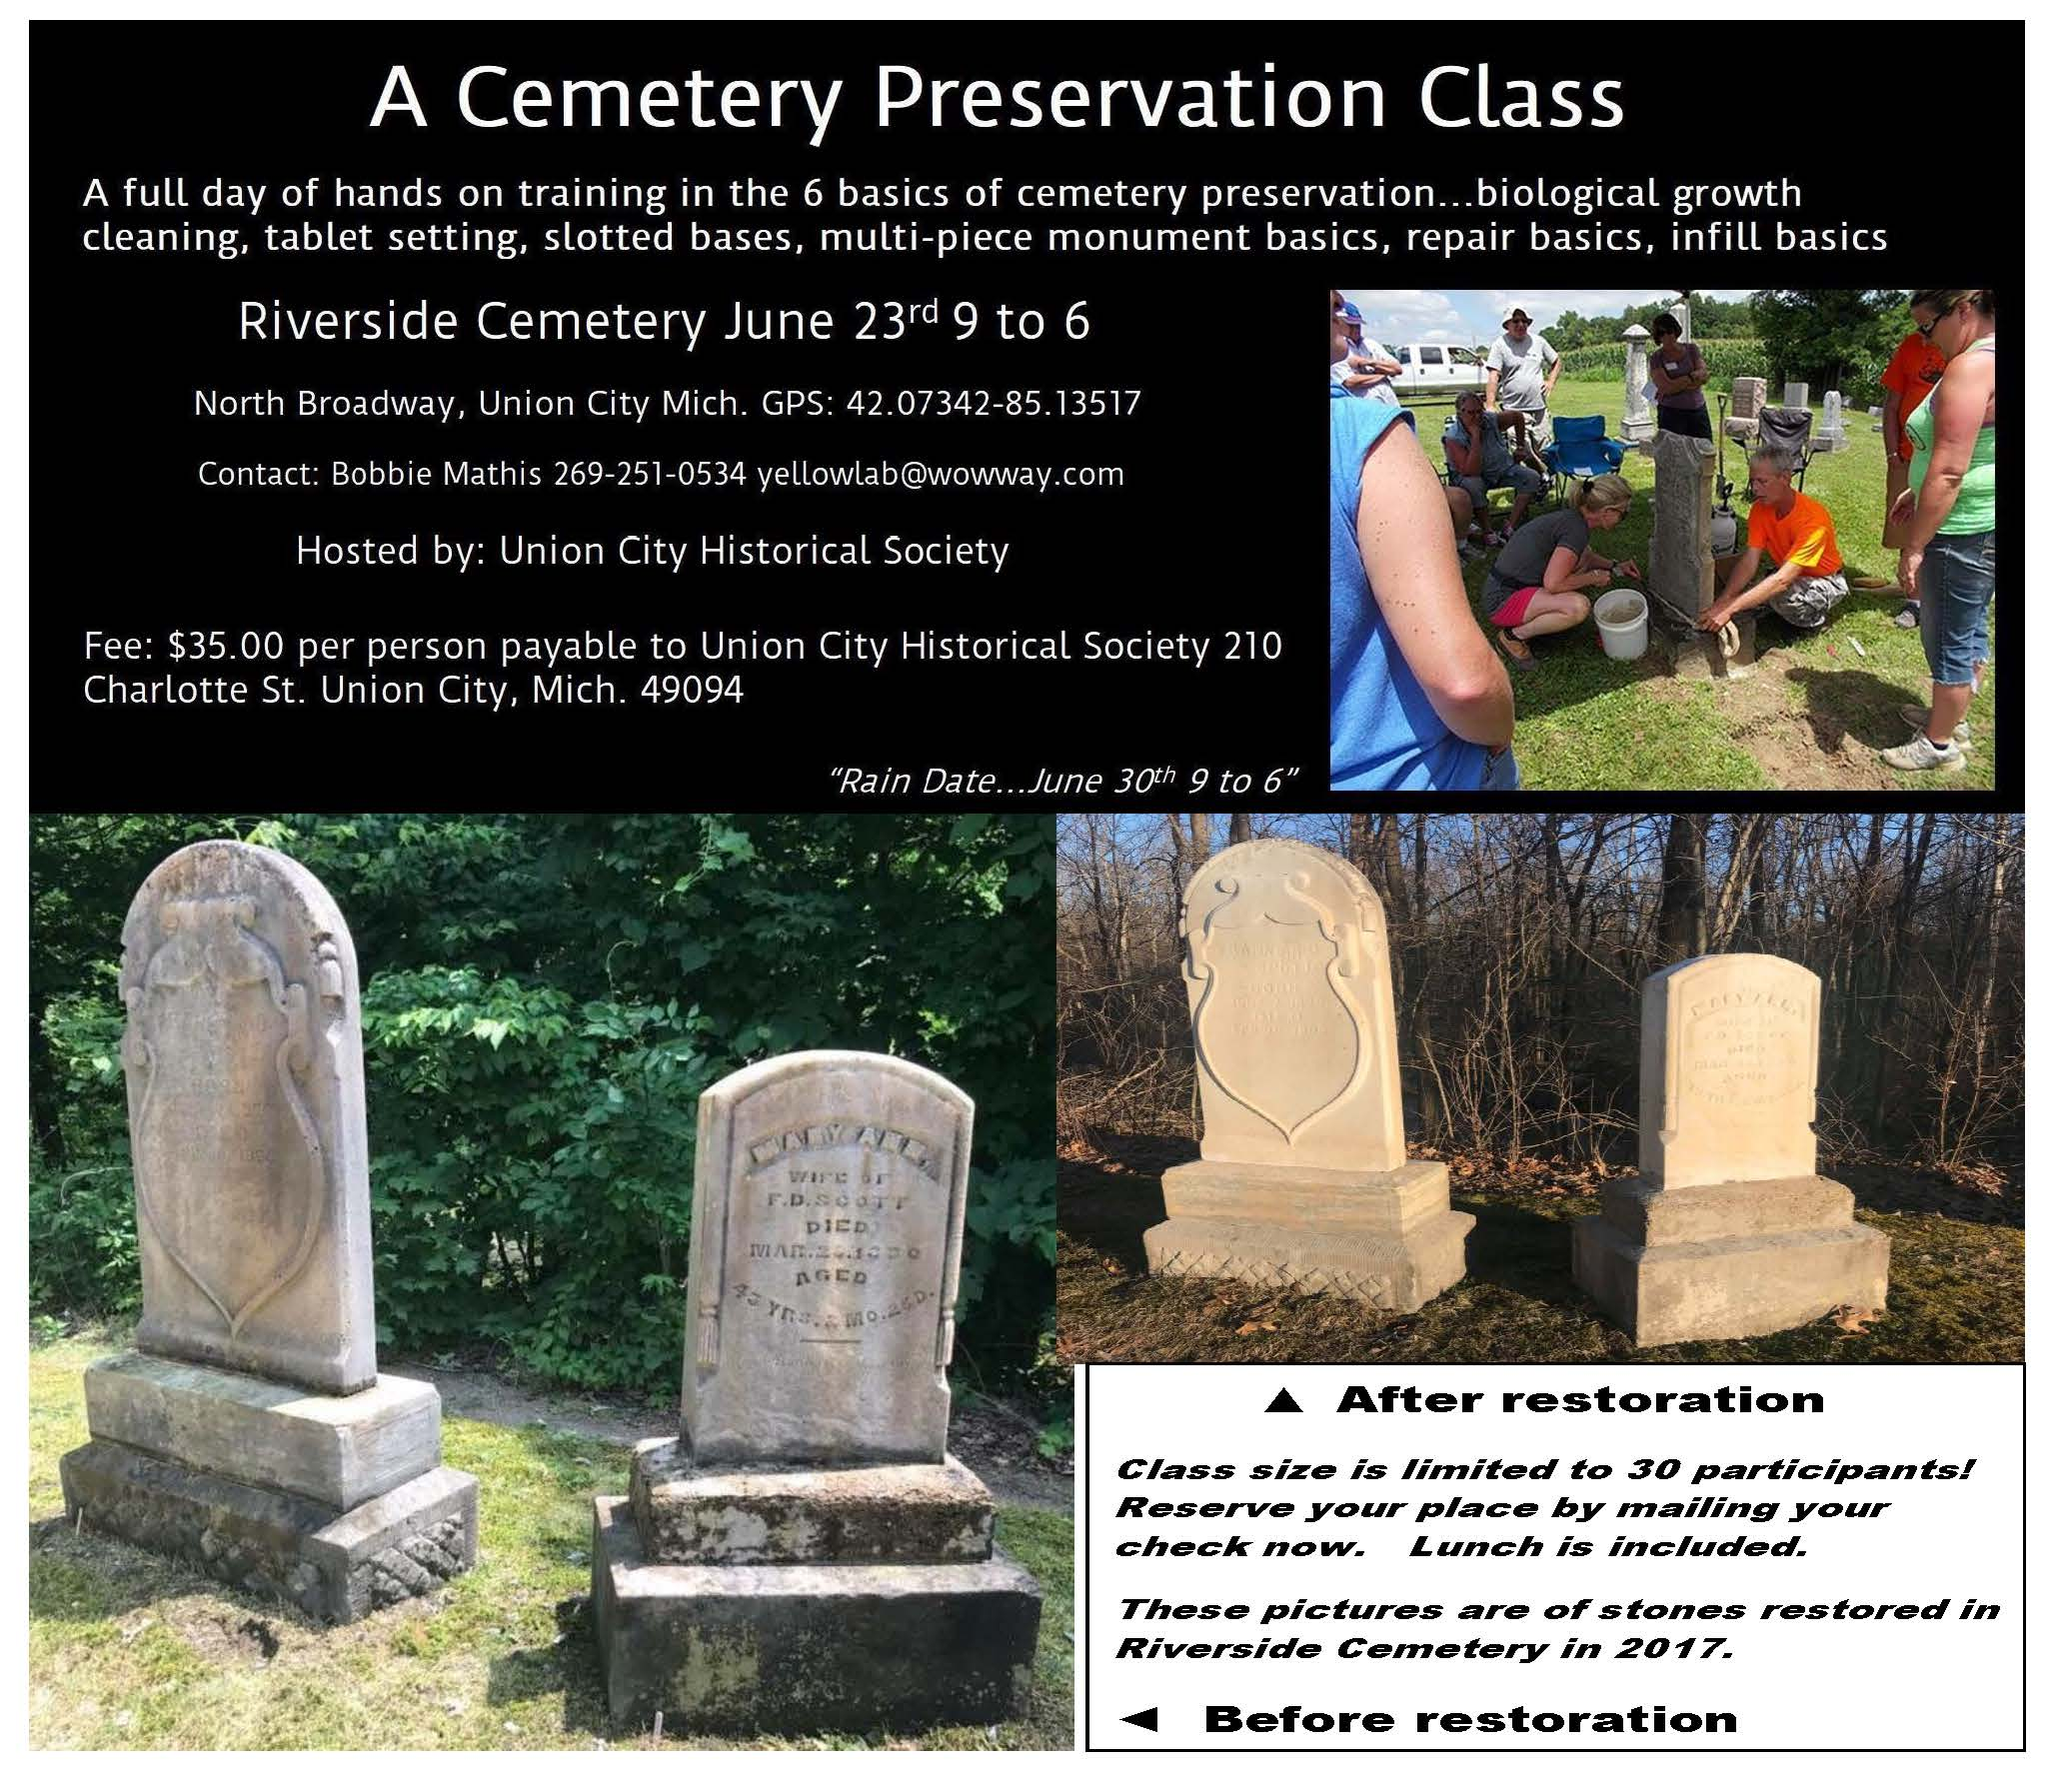 Cemetery Preservation Class flyer